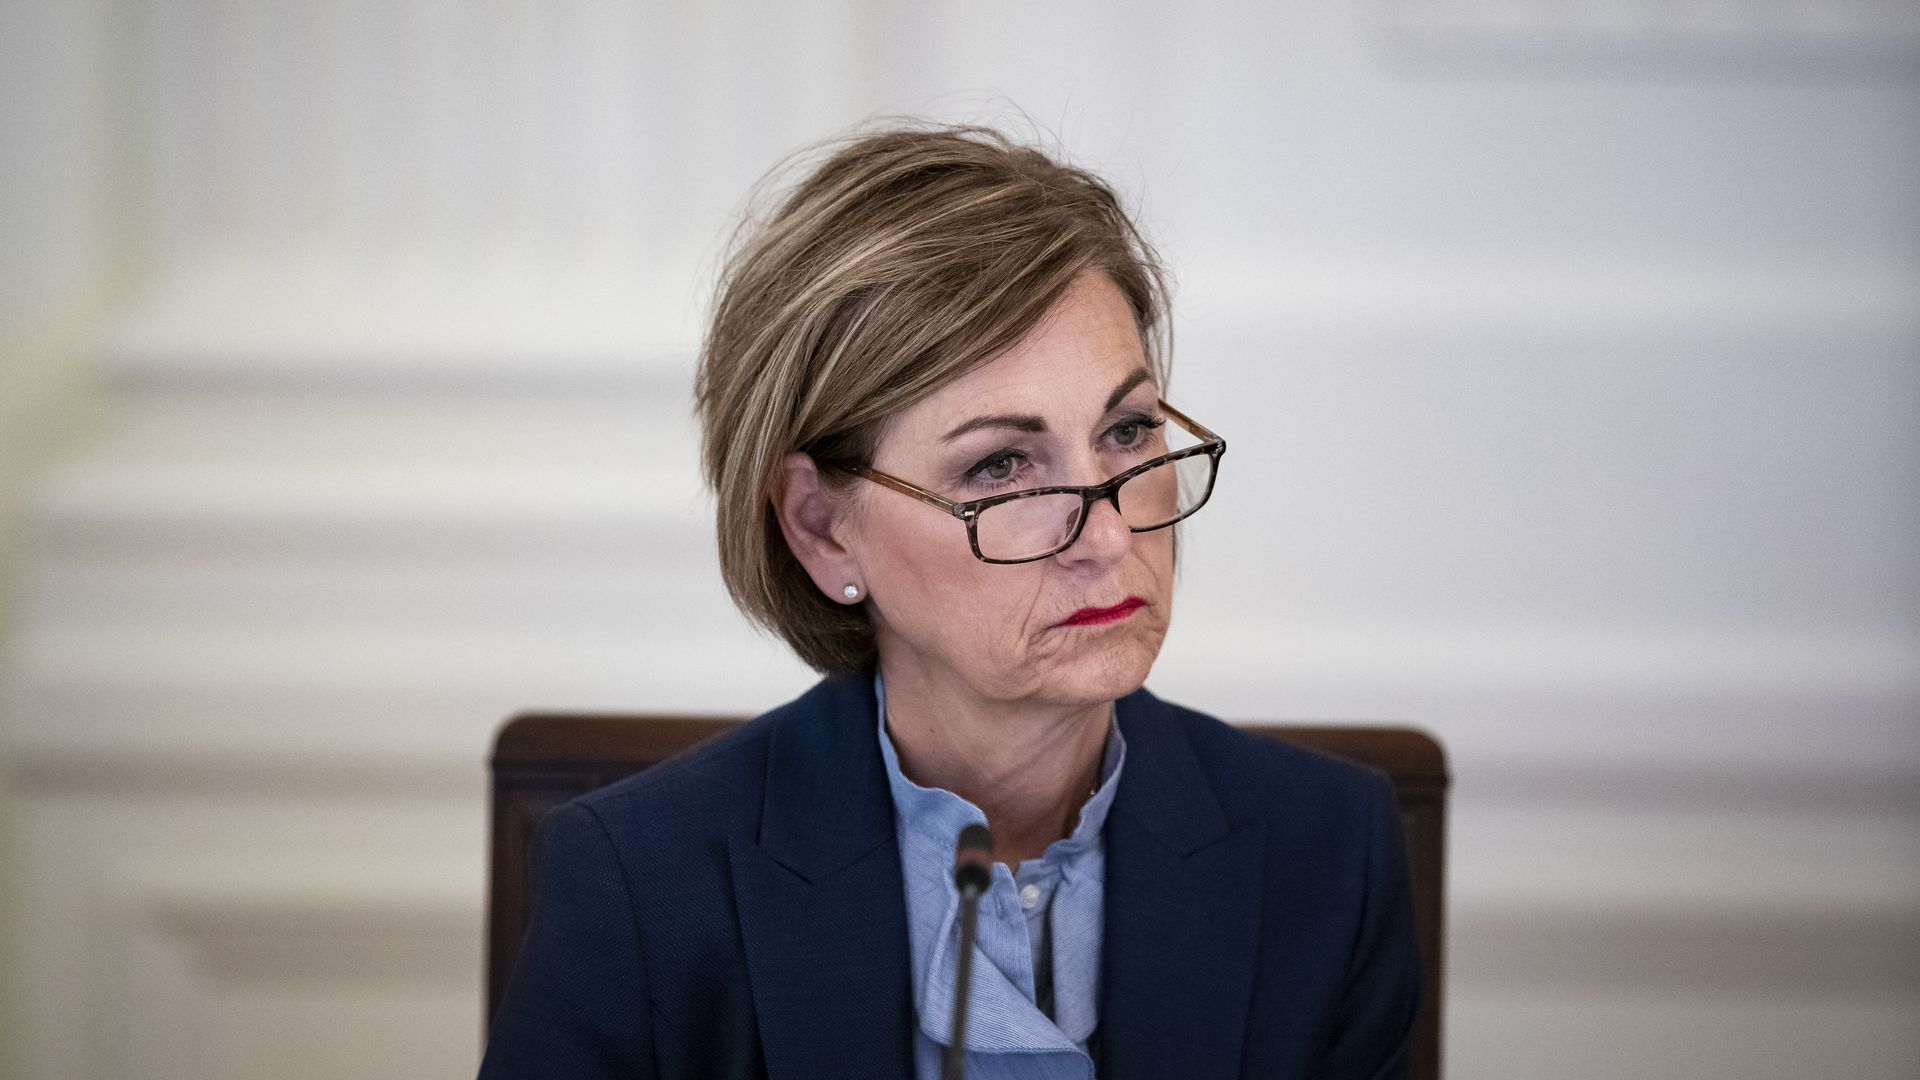 Iowa Gov. Kim Reynolds listens on during a meeting in the White House in 2020.